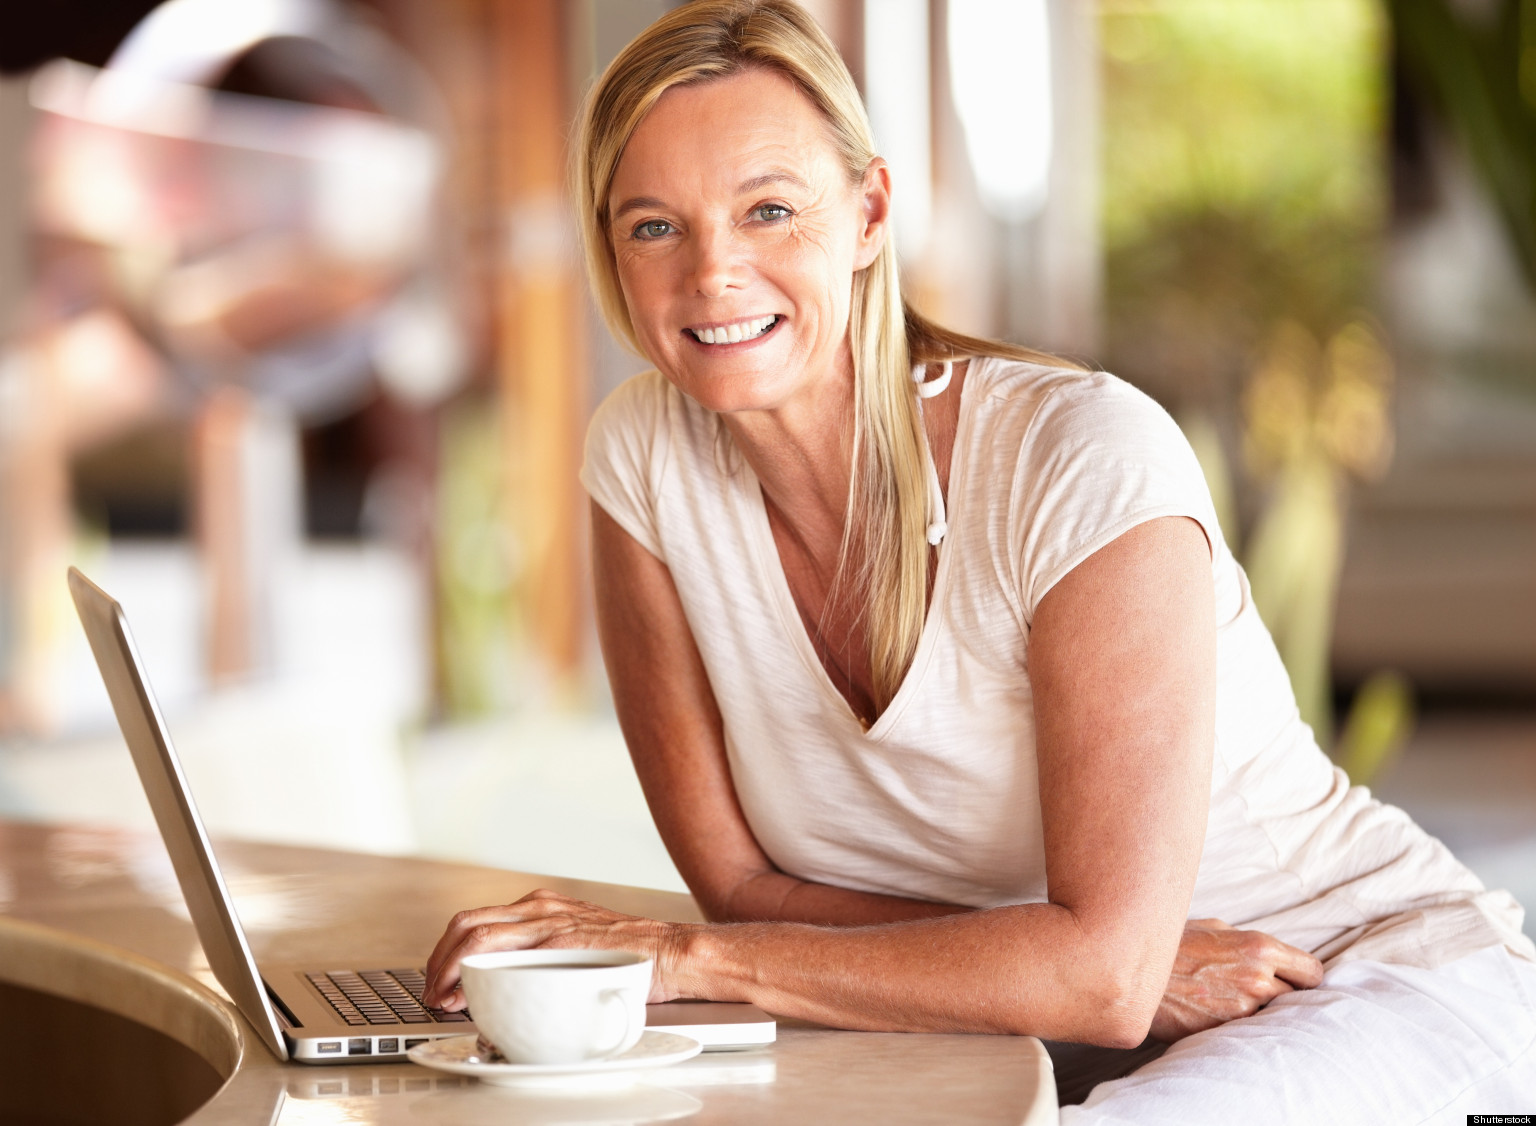 new point single women over 50 Natalie, early 50s, dana point, california, says, there aren't many places here for singles aged 50-60 to go and it's not just in dana point or california, single men are lacking throughout the united states.